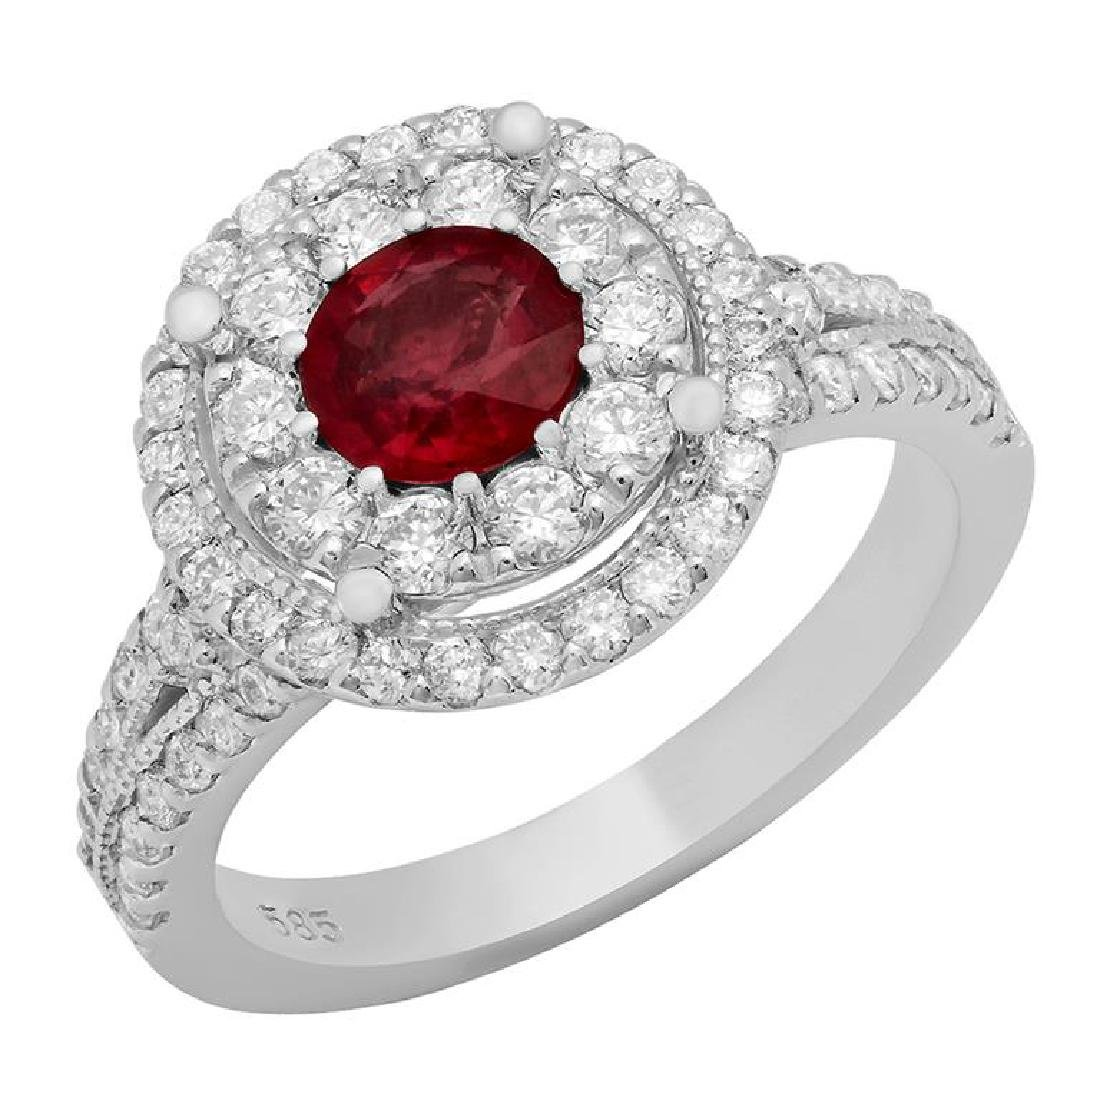 14k White Gold 0.92ct Ruby 1.12ct Diamond Ring